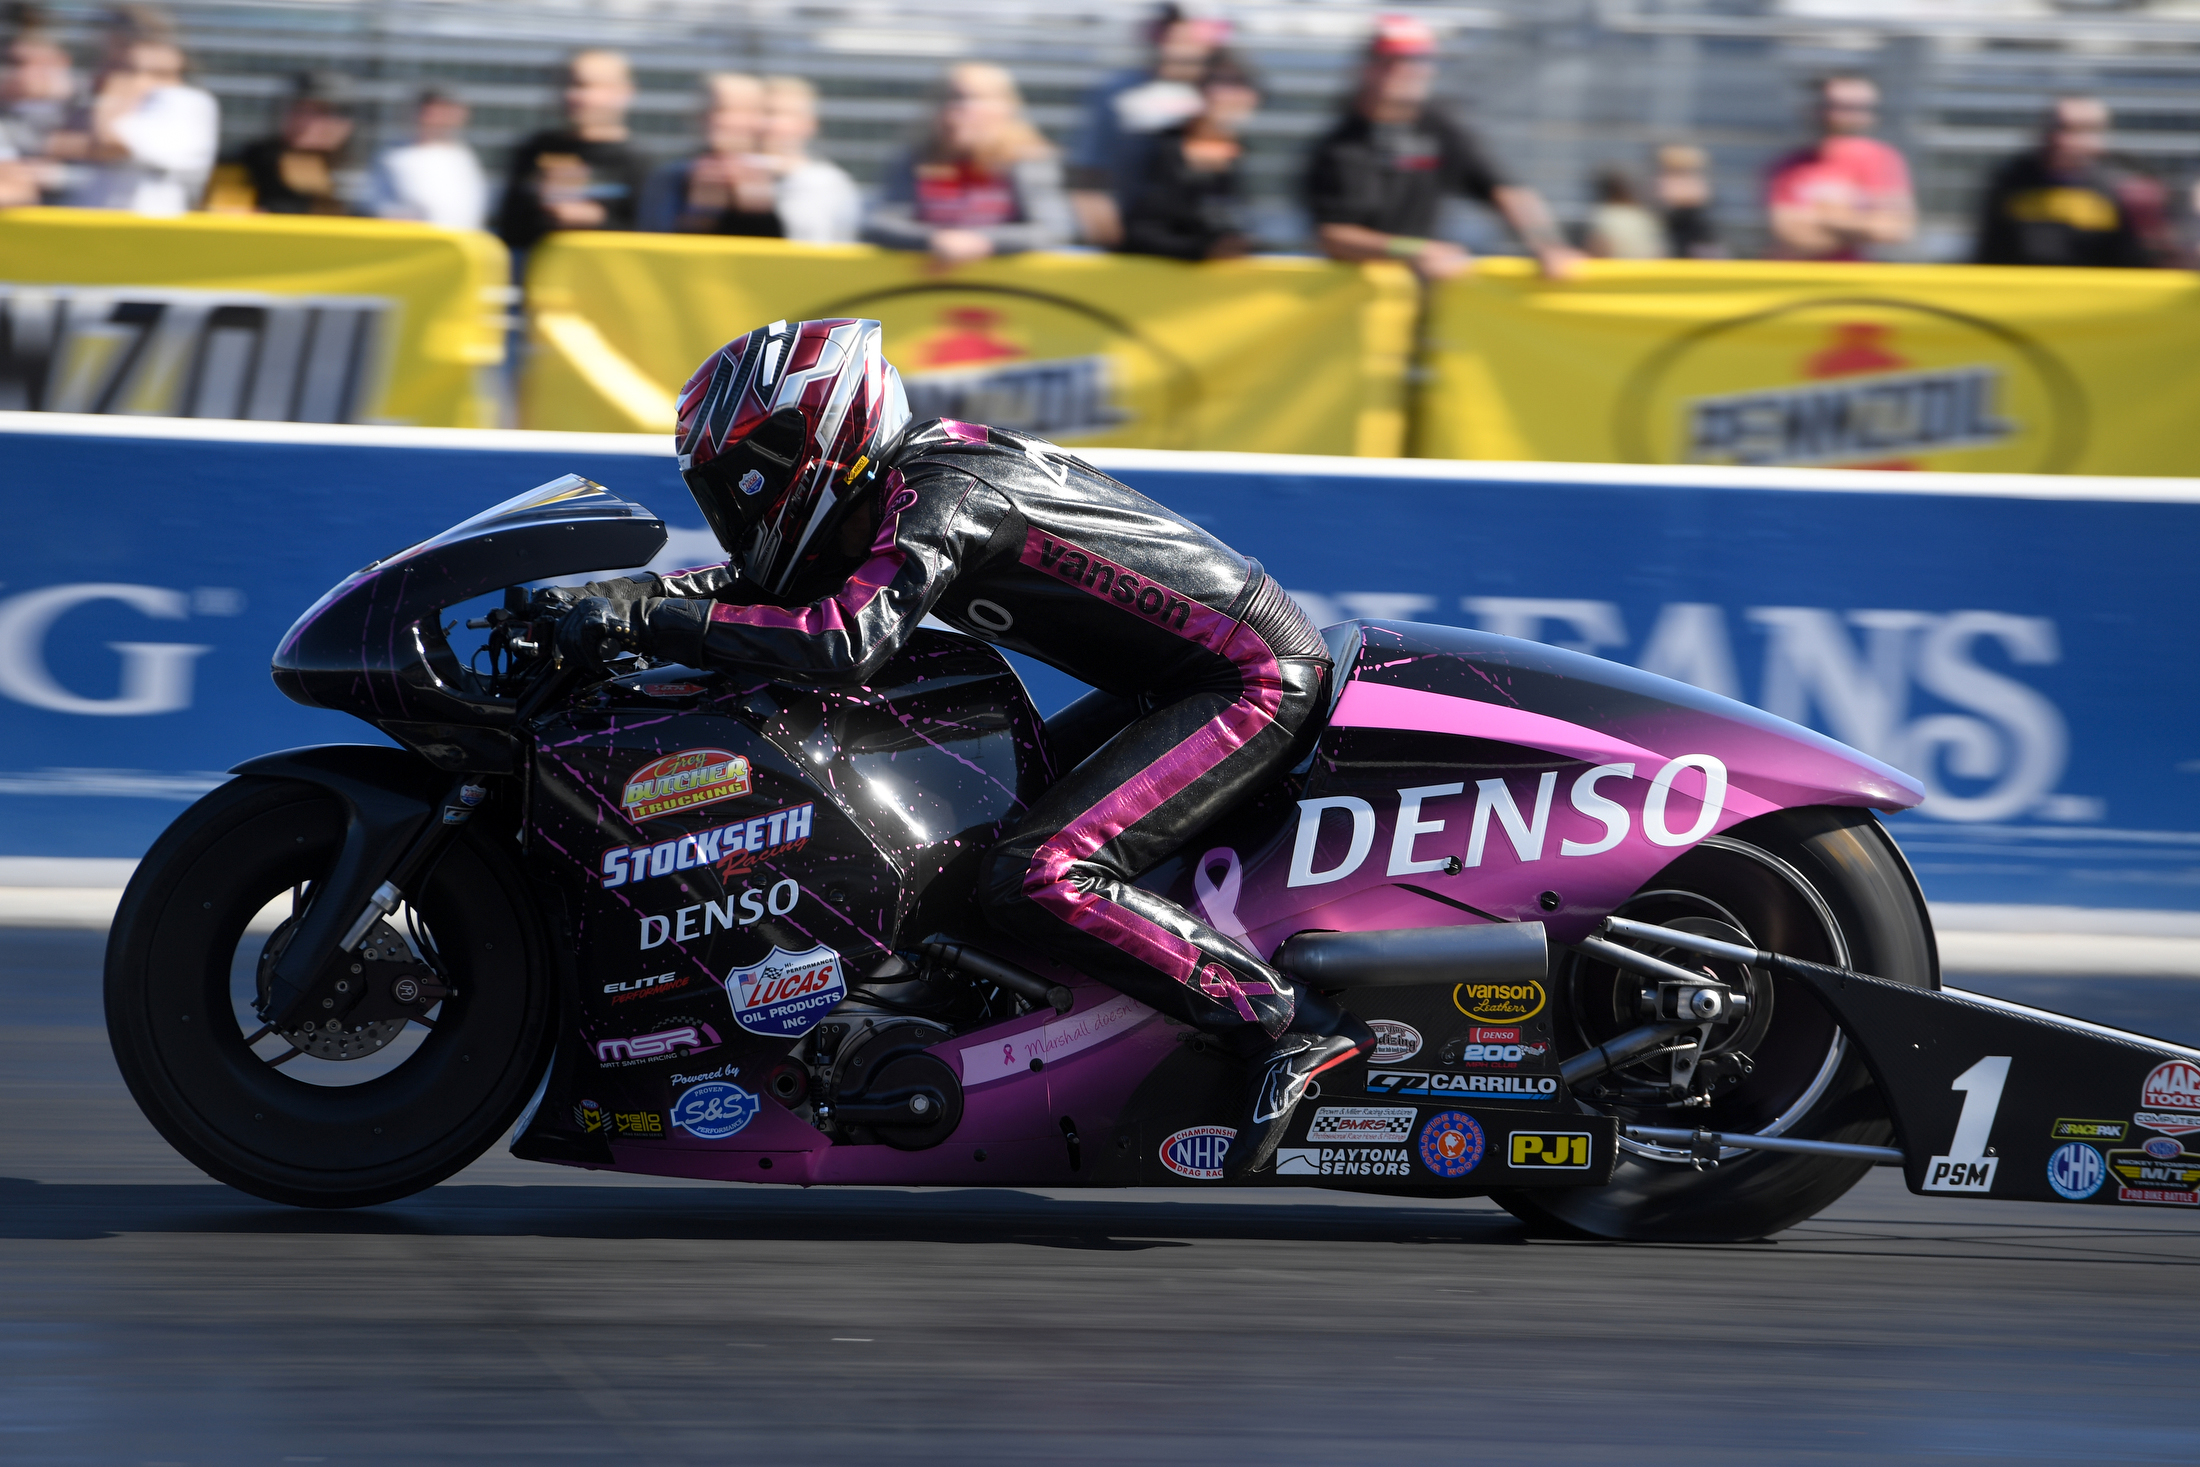 Denso Pro Stock Motorcycle rider Matt Smith racing on Saturday at the Dodge NHRA Nationals presented by Pennzoil